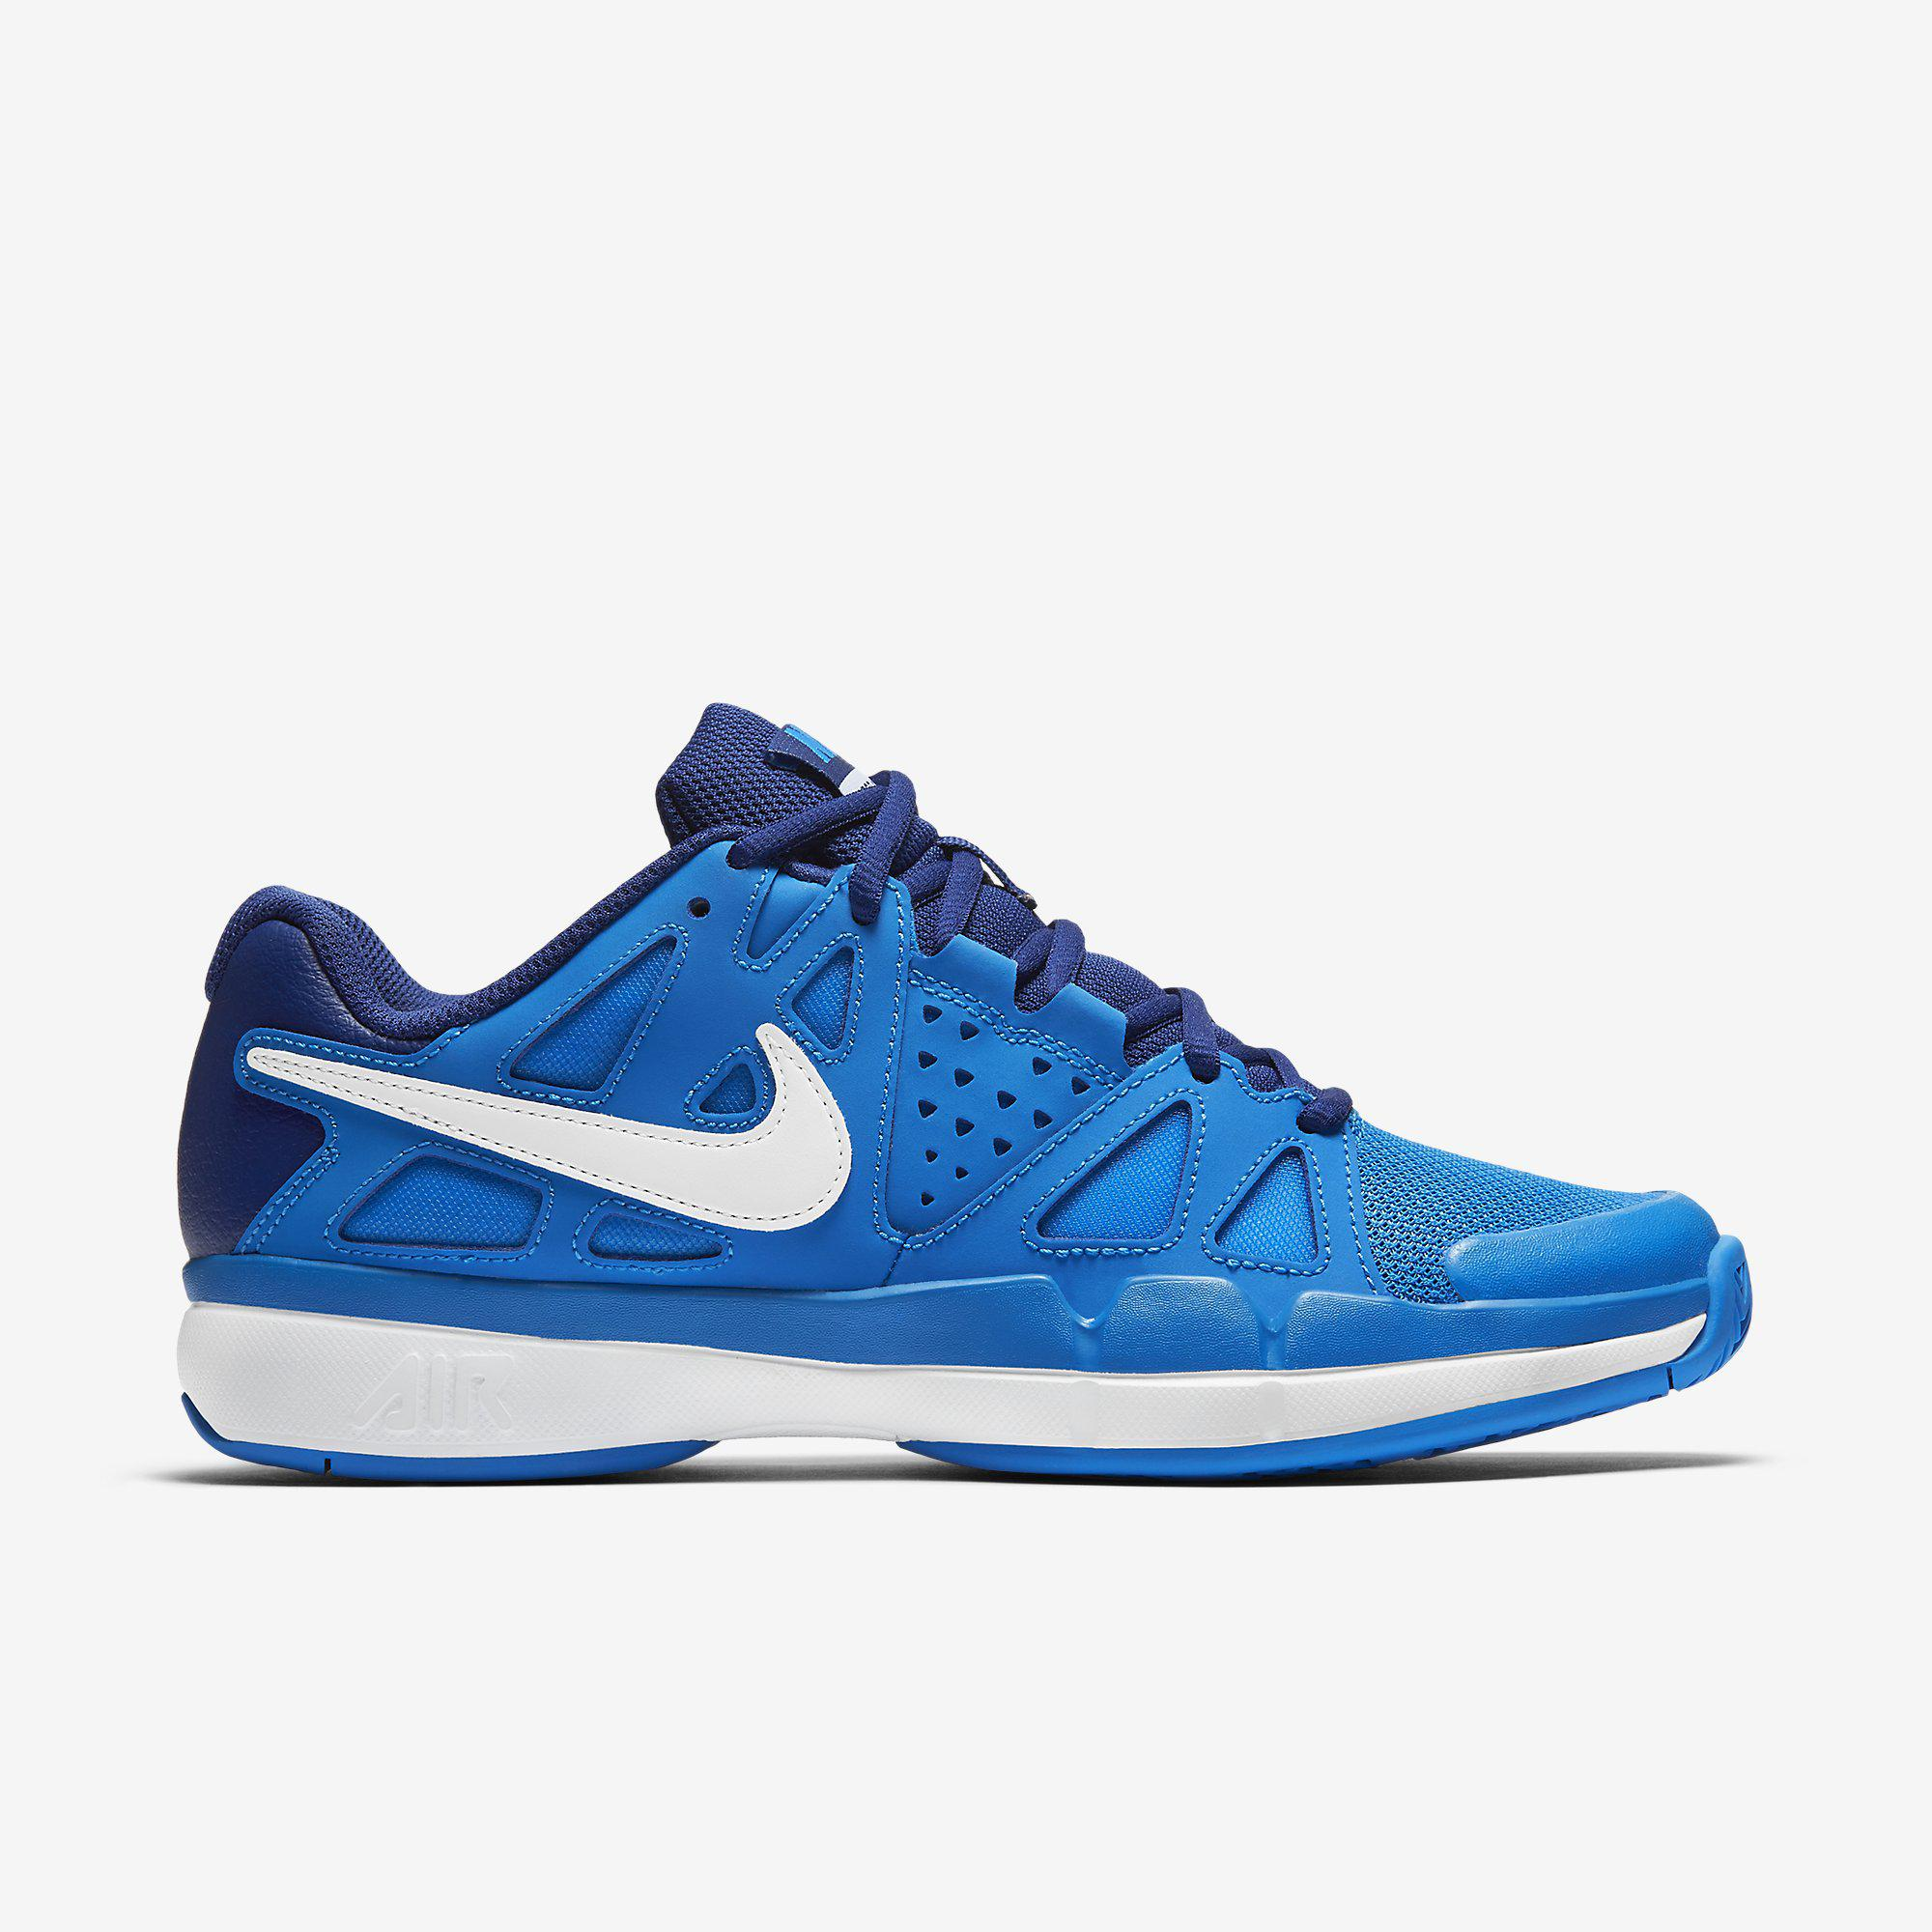 nike womens air vapor advantage tennis shoes blue